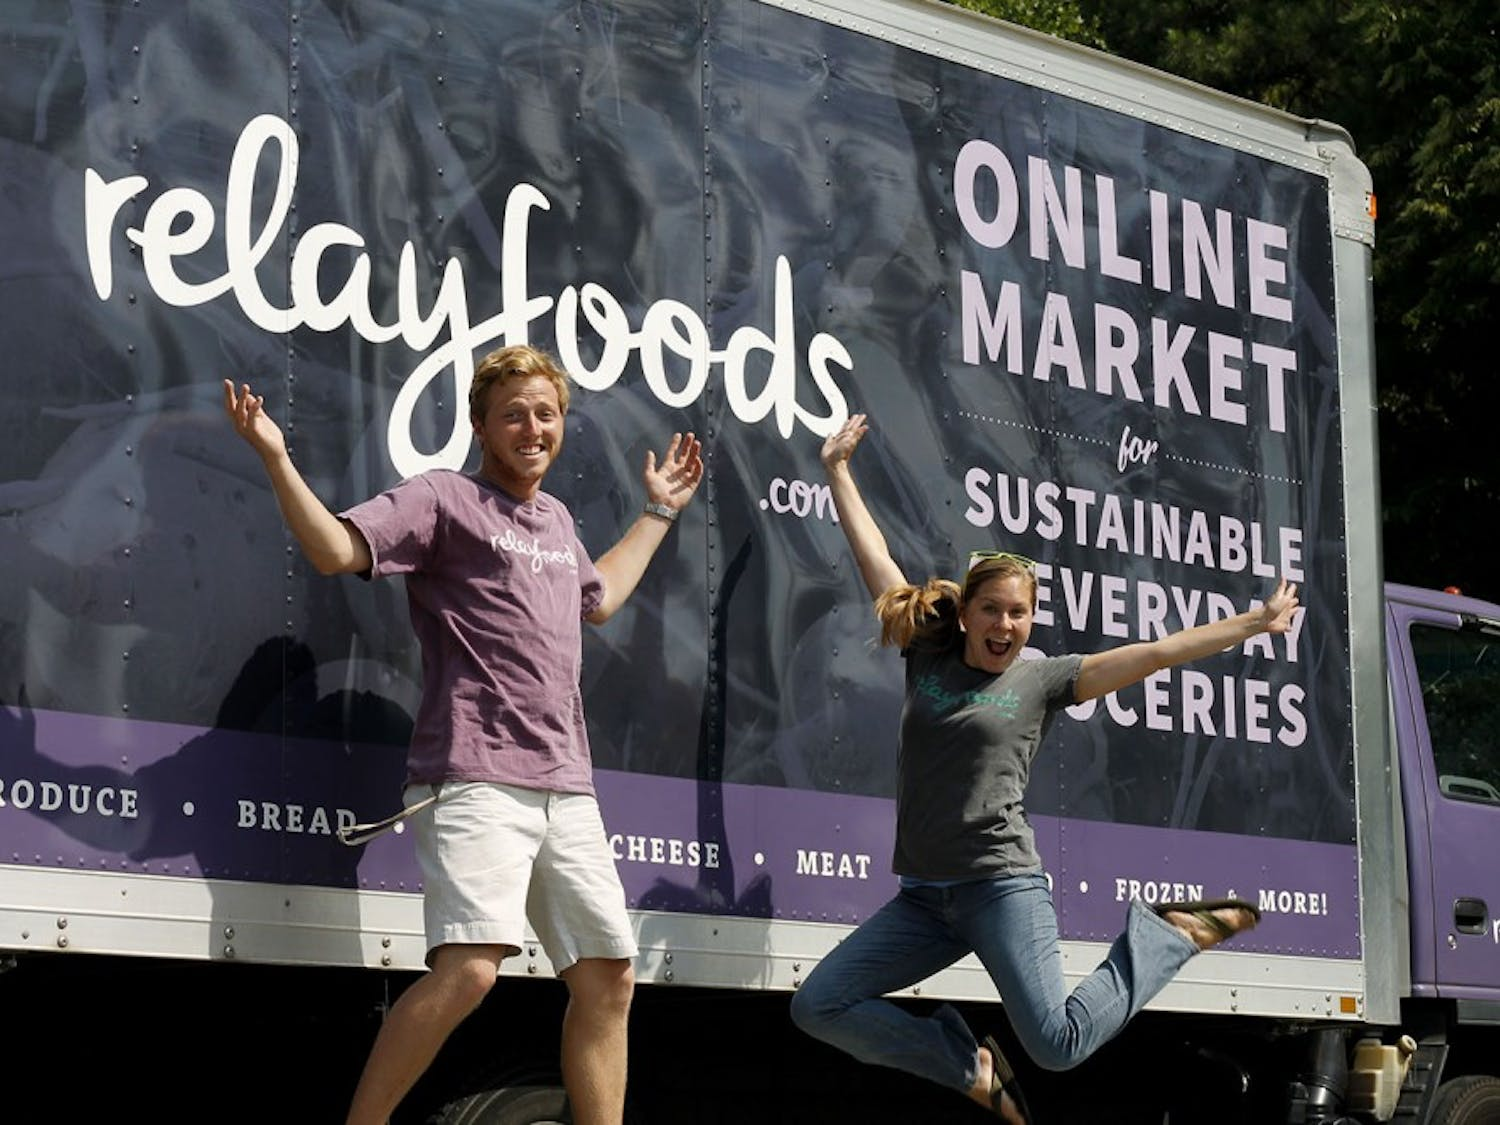 Employees Cheryssa Jensen and Matthew Zachrich run one of the pickup stations for the online grocery store Relay Foods in Chapel Hill.